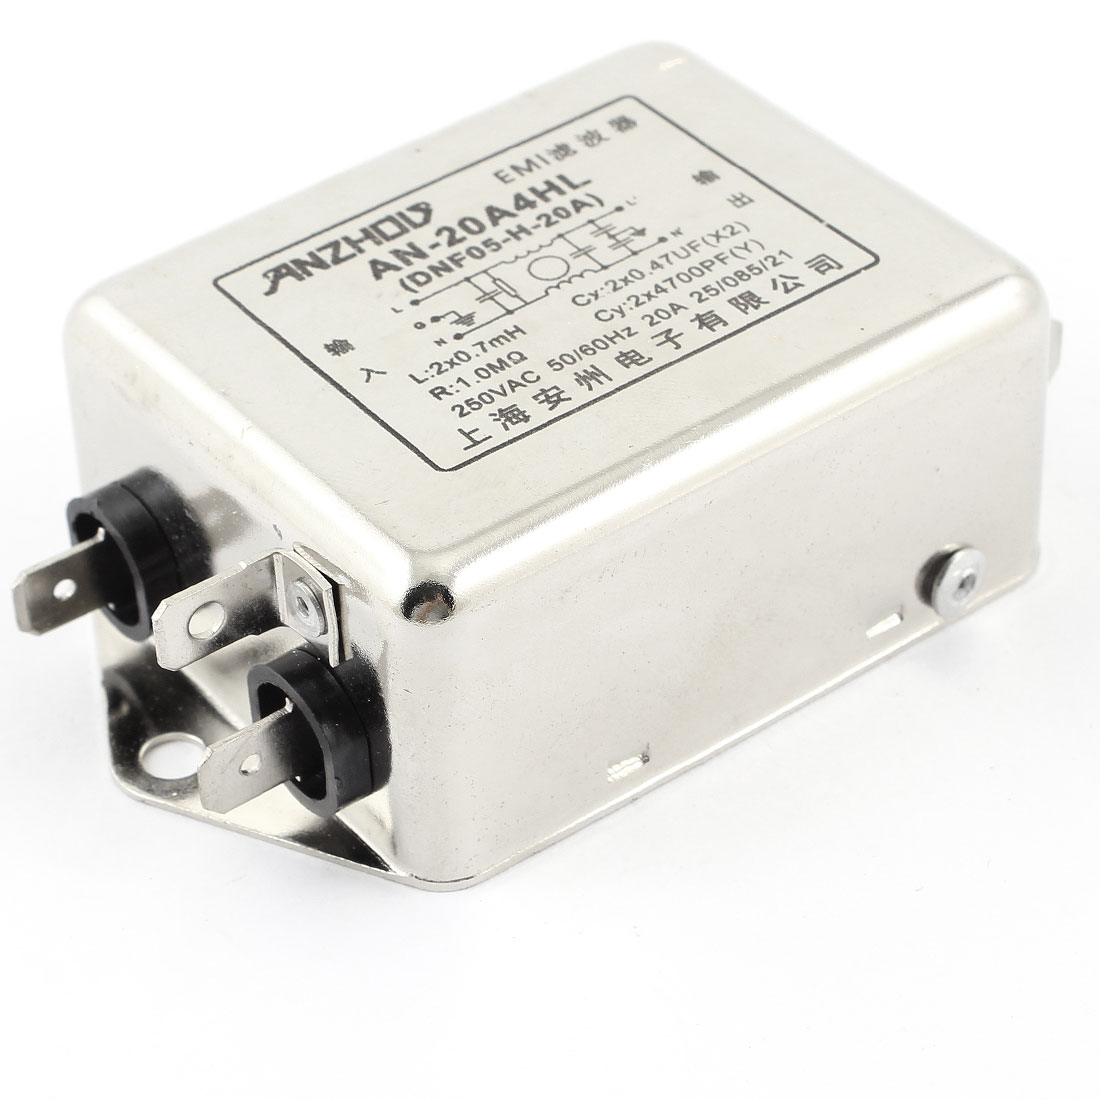 20A Rated Current 50/60Hz AC 250V EMI Filter New AN-20A4HL